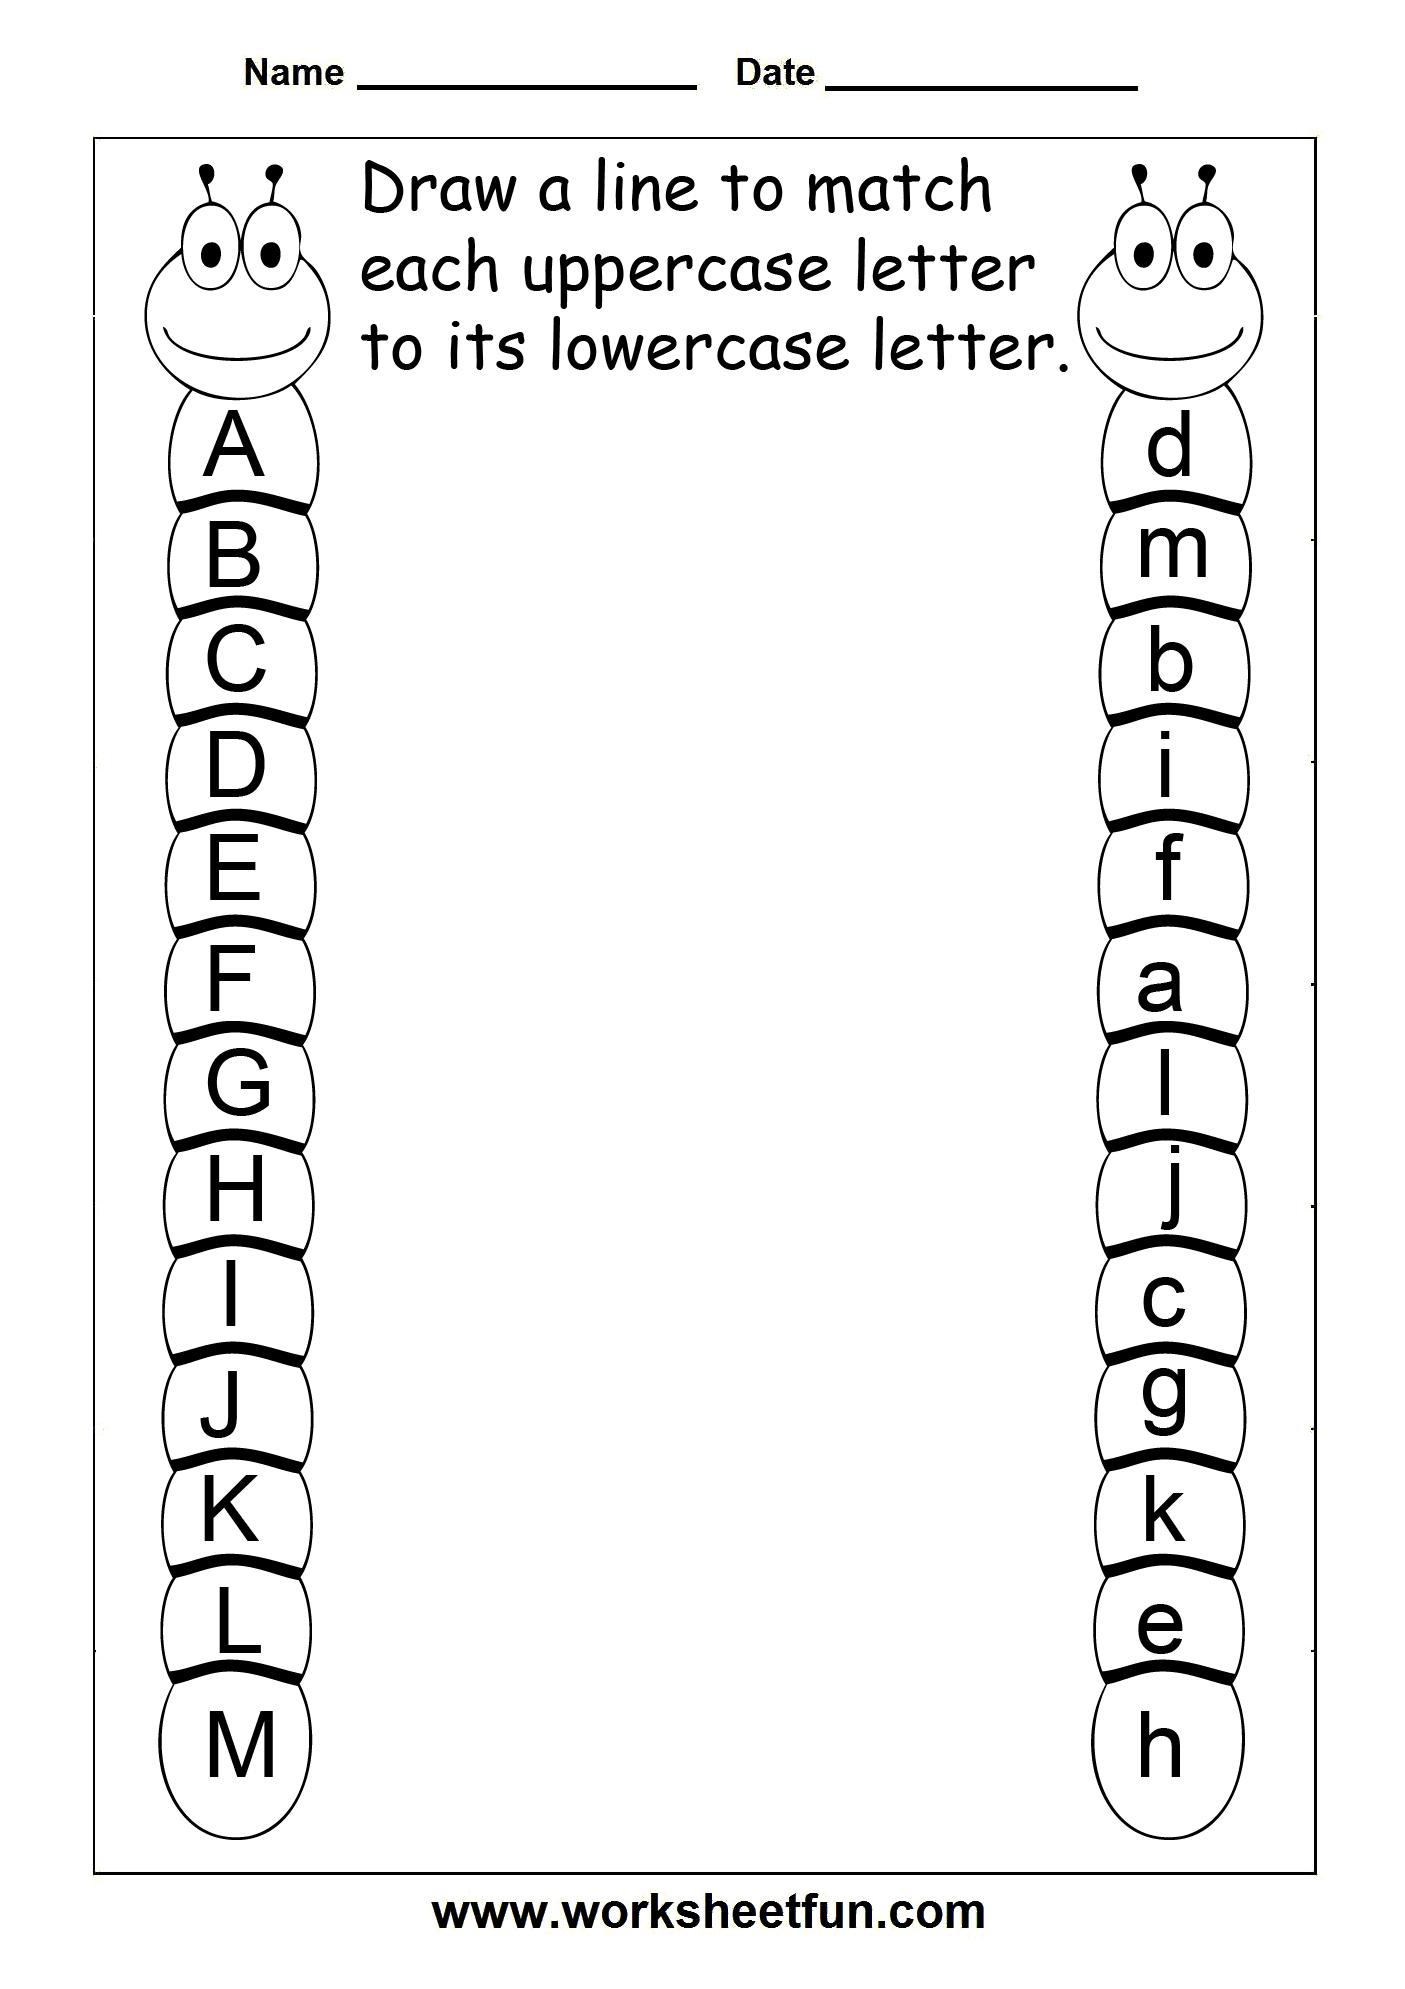 Weirdmailus  Mesmerizing  Images About Work Worksheet On Pinterest  Hidden Pictures  With Inspiring  Images About Work Worksheet On Pinterest  Hidden Pictures Color By Numbers And Puzzles With Cute Kinder Reading Worksheets Also Area Parallelogram Worksheet In Addition Freedom Writers Worksheet And Variable Equations Worksheet As Well As Get The Point Math Worksheet Additionally Vector Worksheet With Answers From Pinterestcom With Weirdmailus  Inspiring  Images About Work Worksheet On Pinterest  Hidden Pictures  With Cute  Images About Work Worksheet On Pinterest  Hidden Pictures Color By Numbers And Puzzles And Mesmerizing Kinder Reading Worksheets Also Area Parallelogram Worksheet In Addition Freedom Writers Worksheet From Pinterestcom